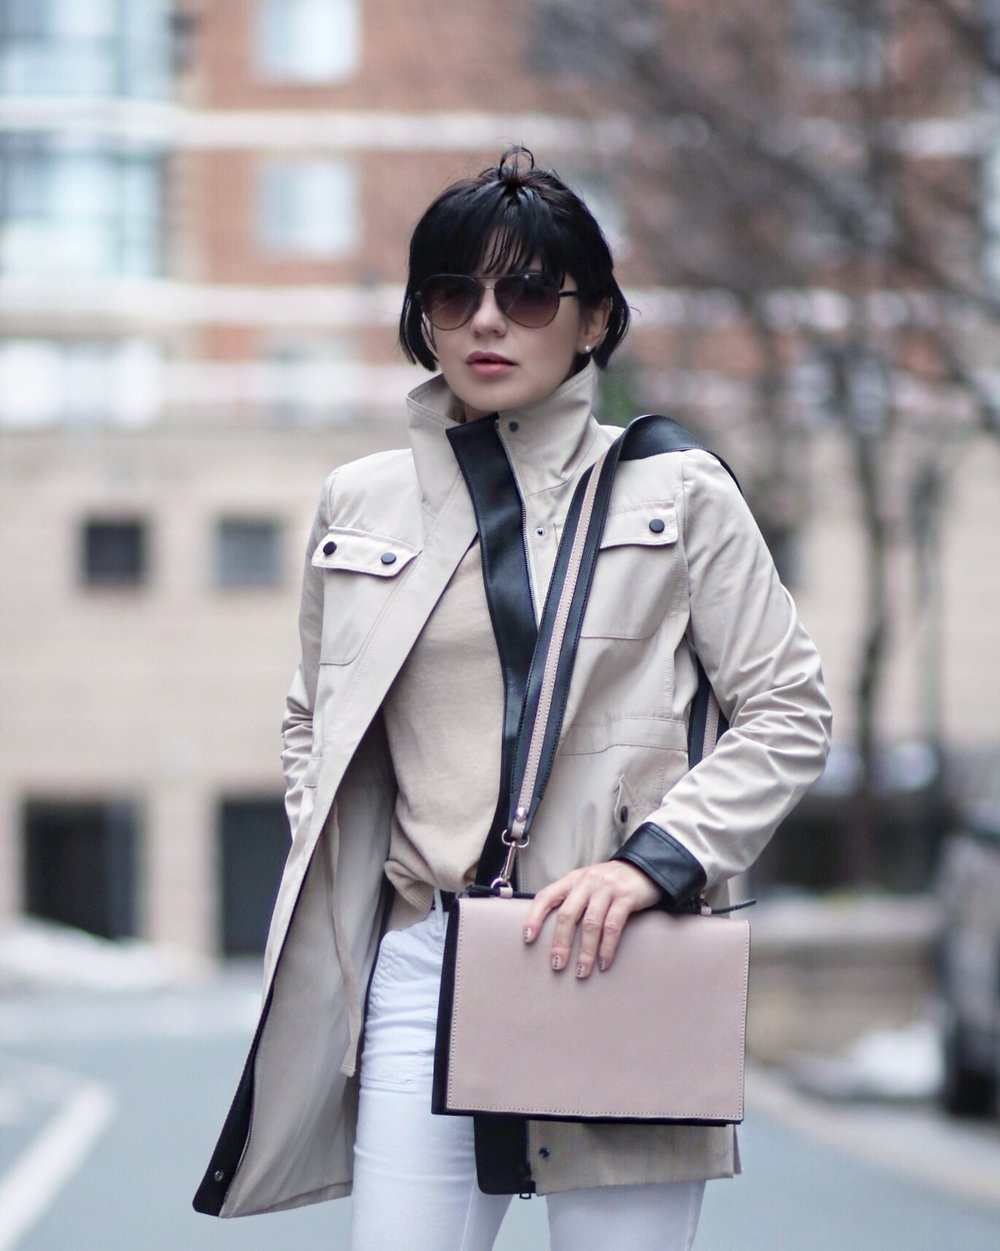 beige trench coat and bag